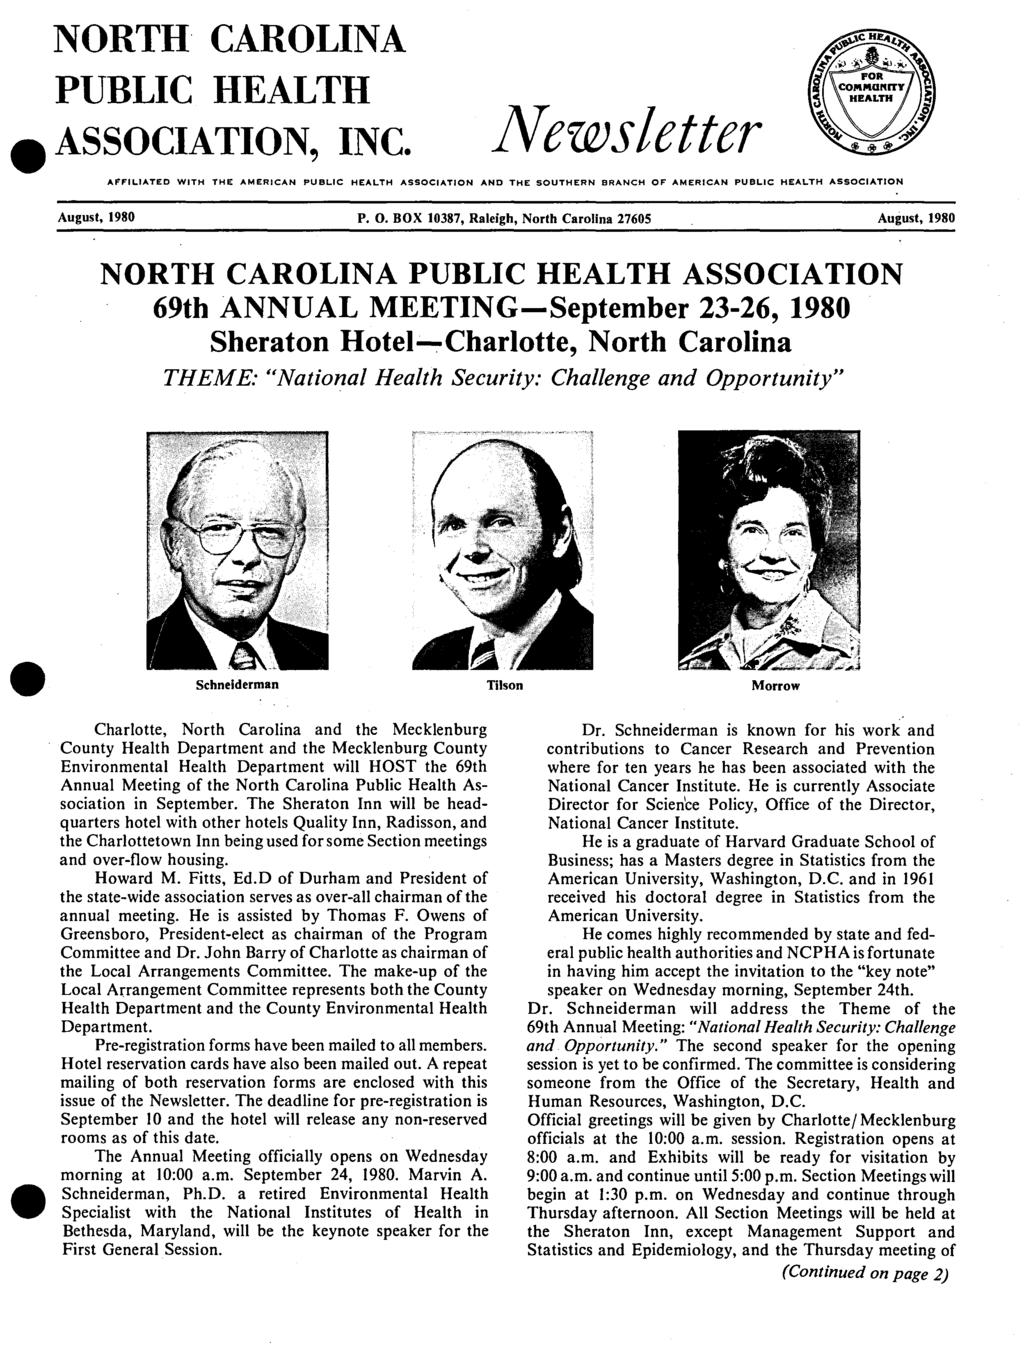 NORTH CAROLINA PUBLIC HEALTH ASSOCIATION INC. Newsletter AFFILIATED WITH THE AMERICAN PUBLIC HEALTH ASSOCIATION AND THE SOUTHERN BRANCH OF